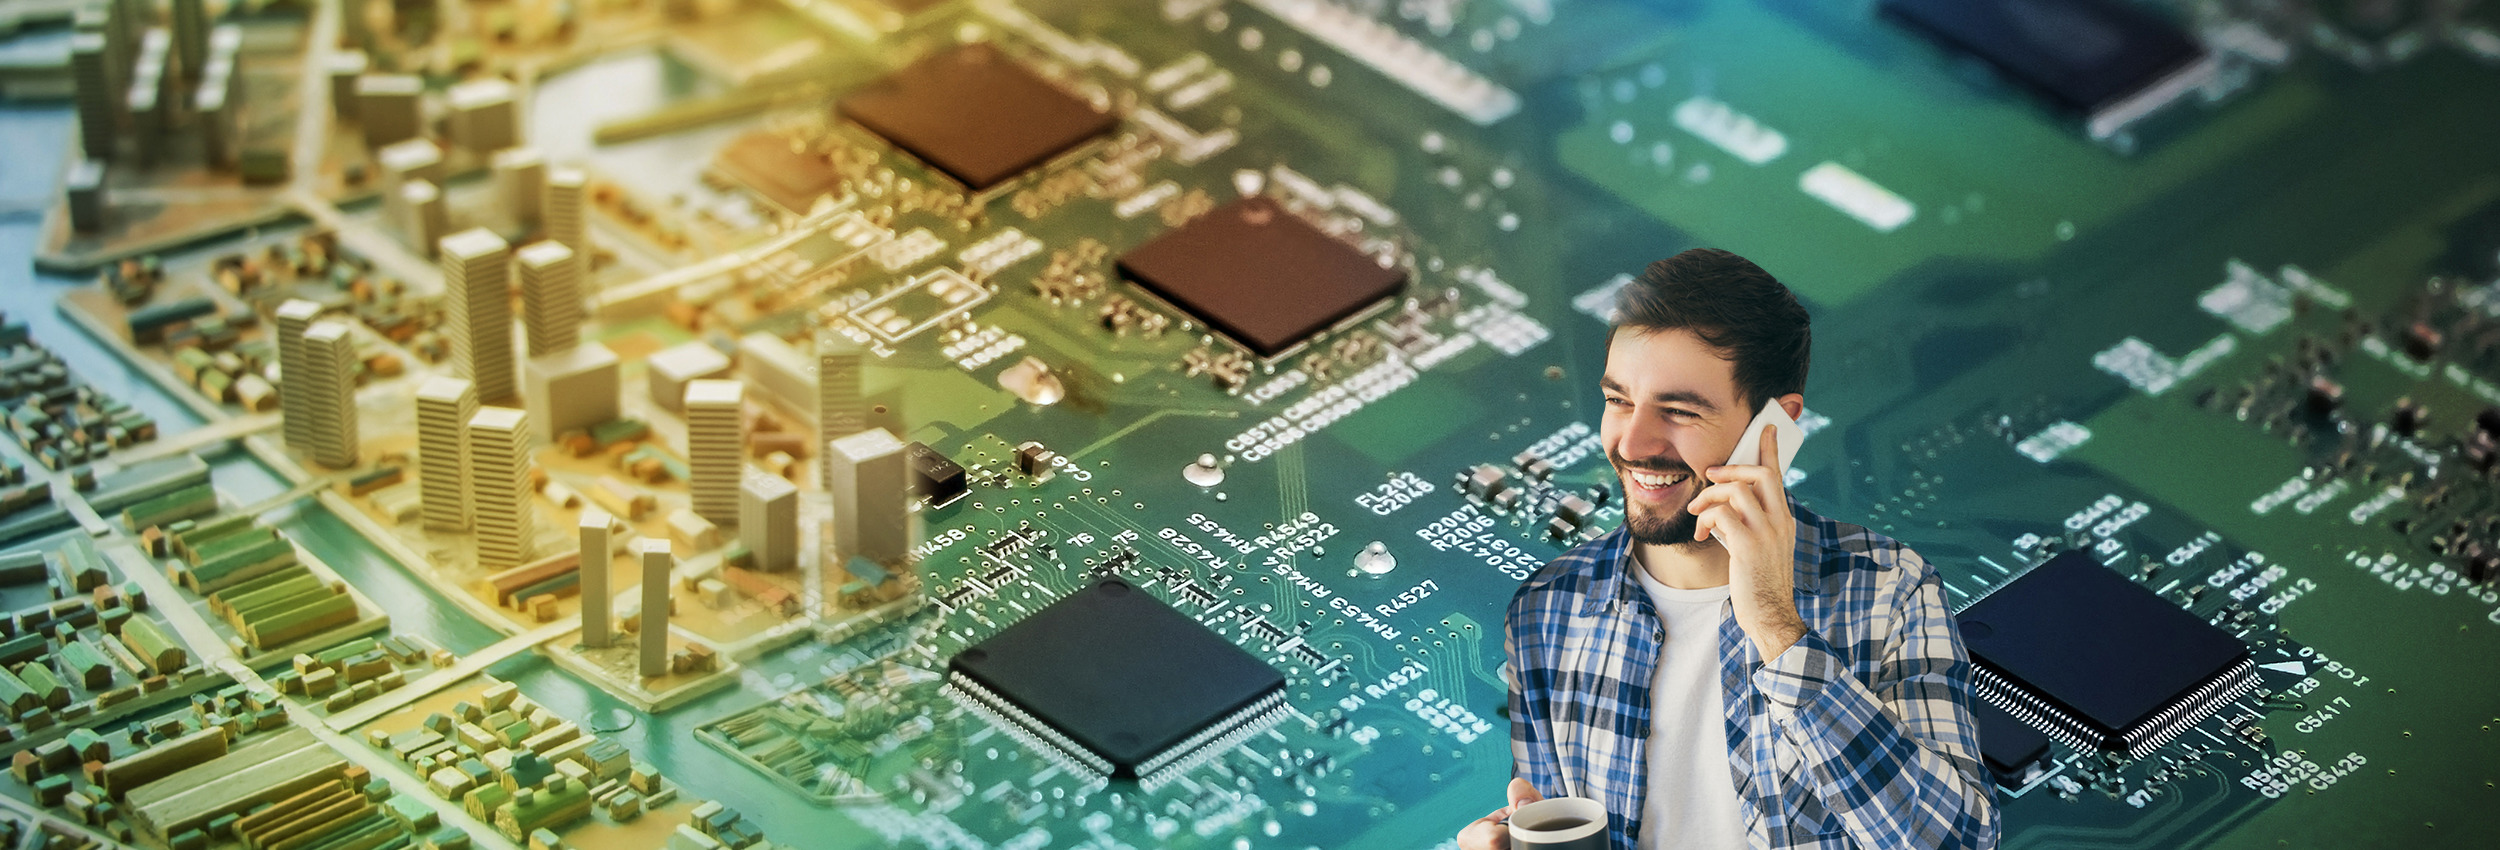 Dieco Electronics Is Focusing On Further Growth Through The Sale Of Electronic Circuit Integrated Fast Benelux Bv Bruco